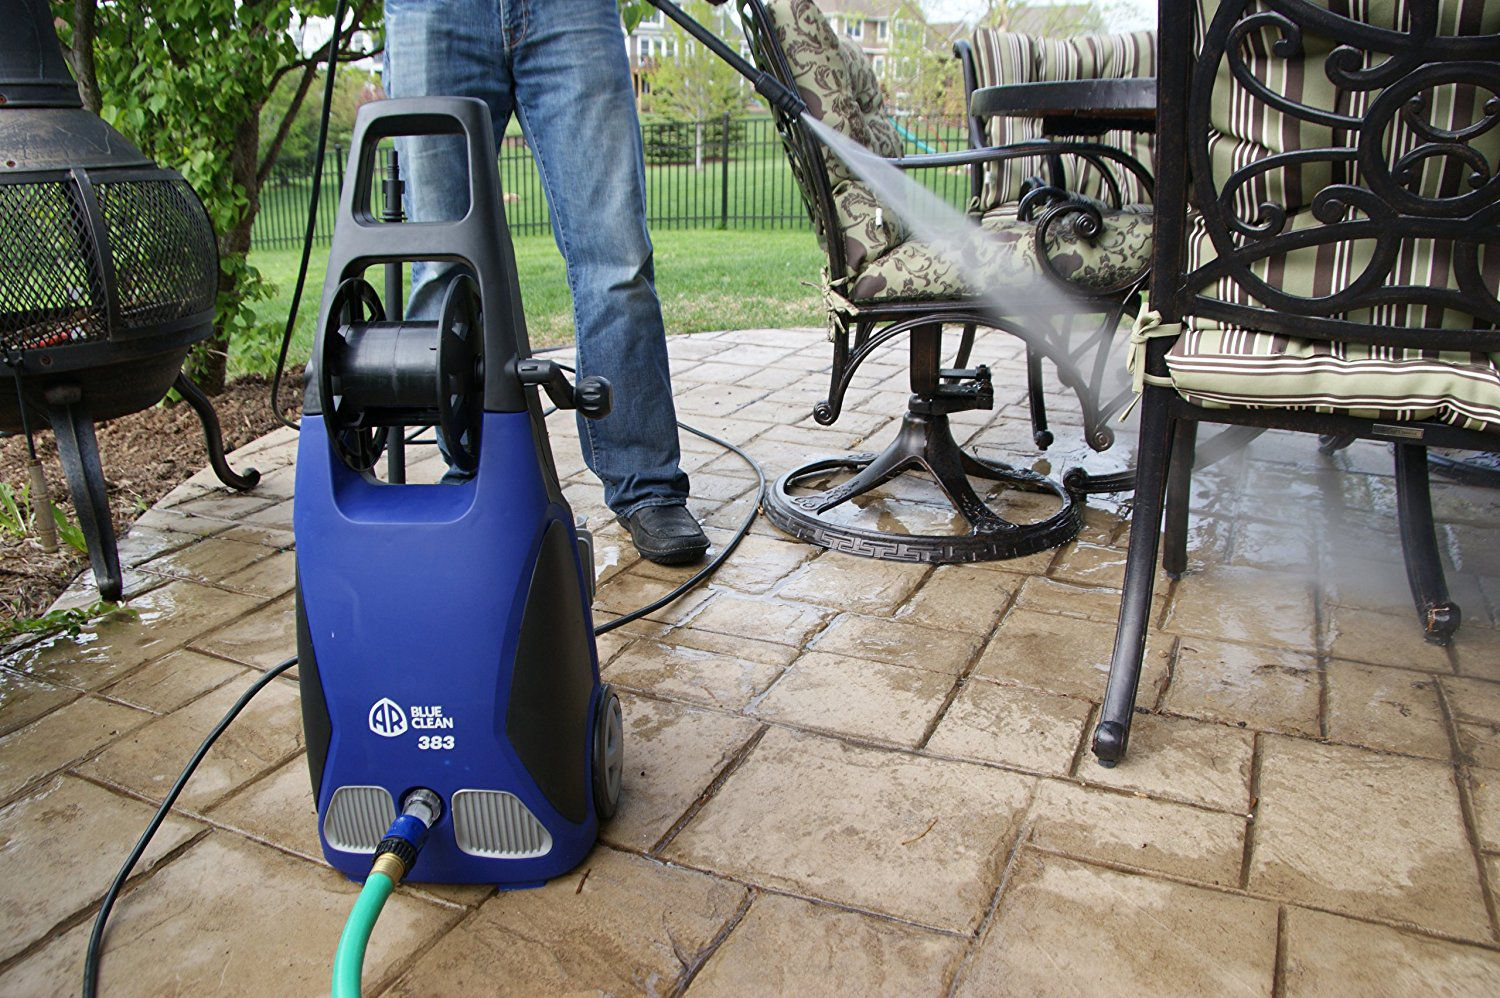 AR Blue Clean AR383 Electric Power Washer Review